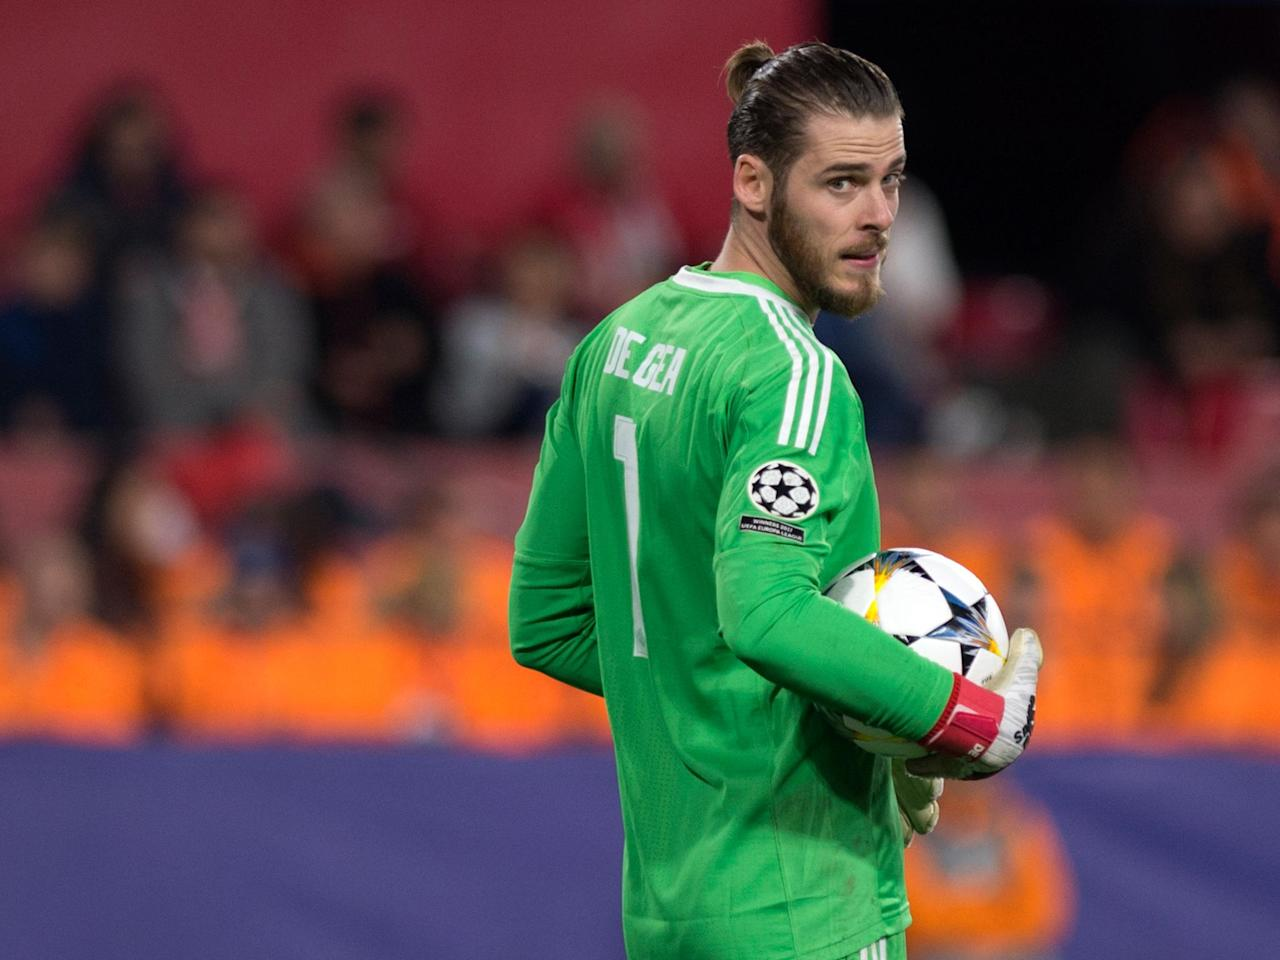 Manchester United players 'had doubts' about David de Gea when he first joined, reveals Rio Ferdinand